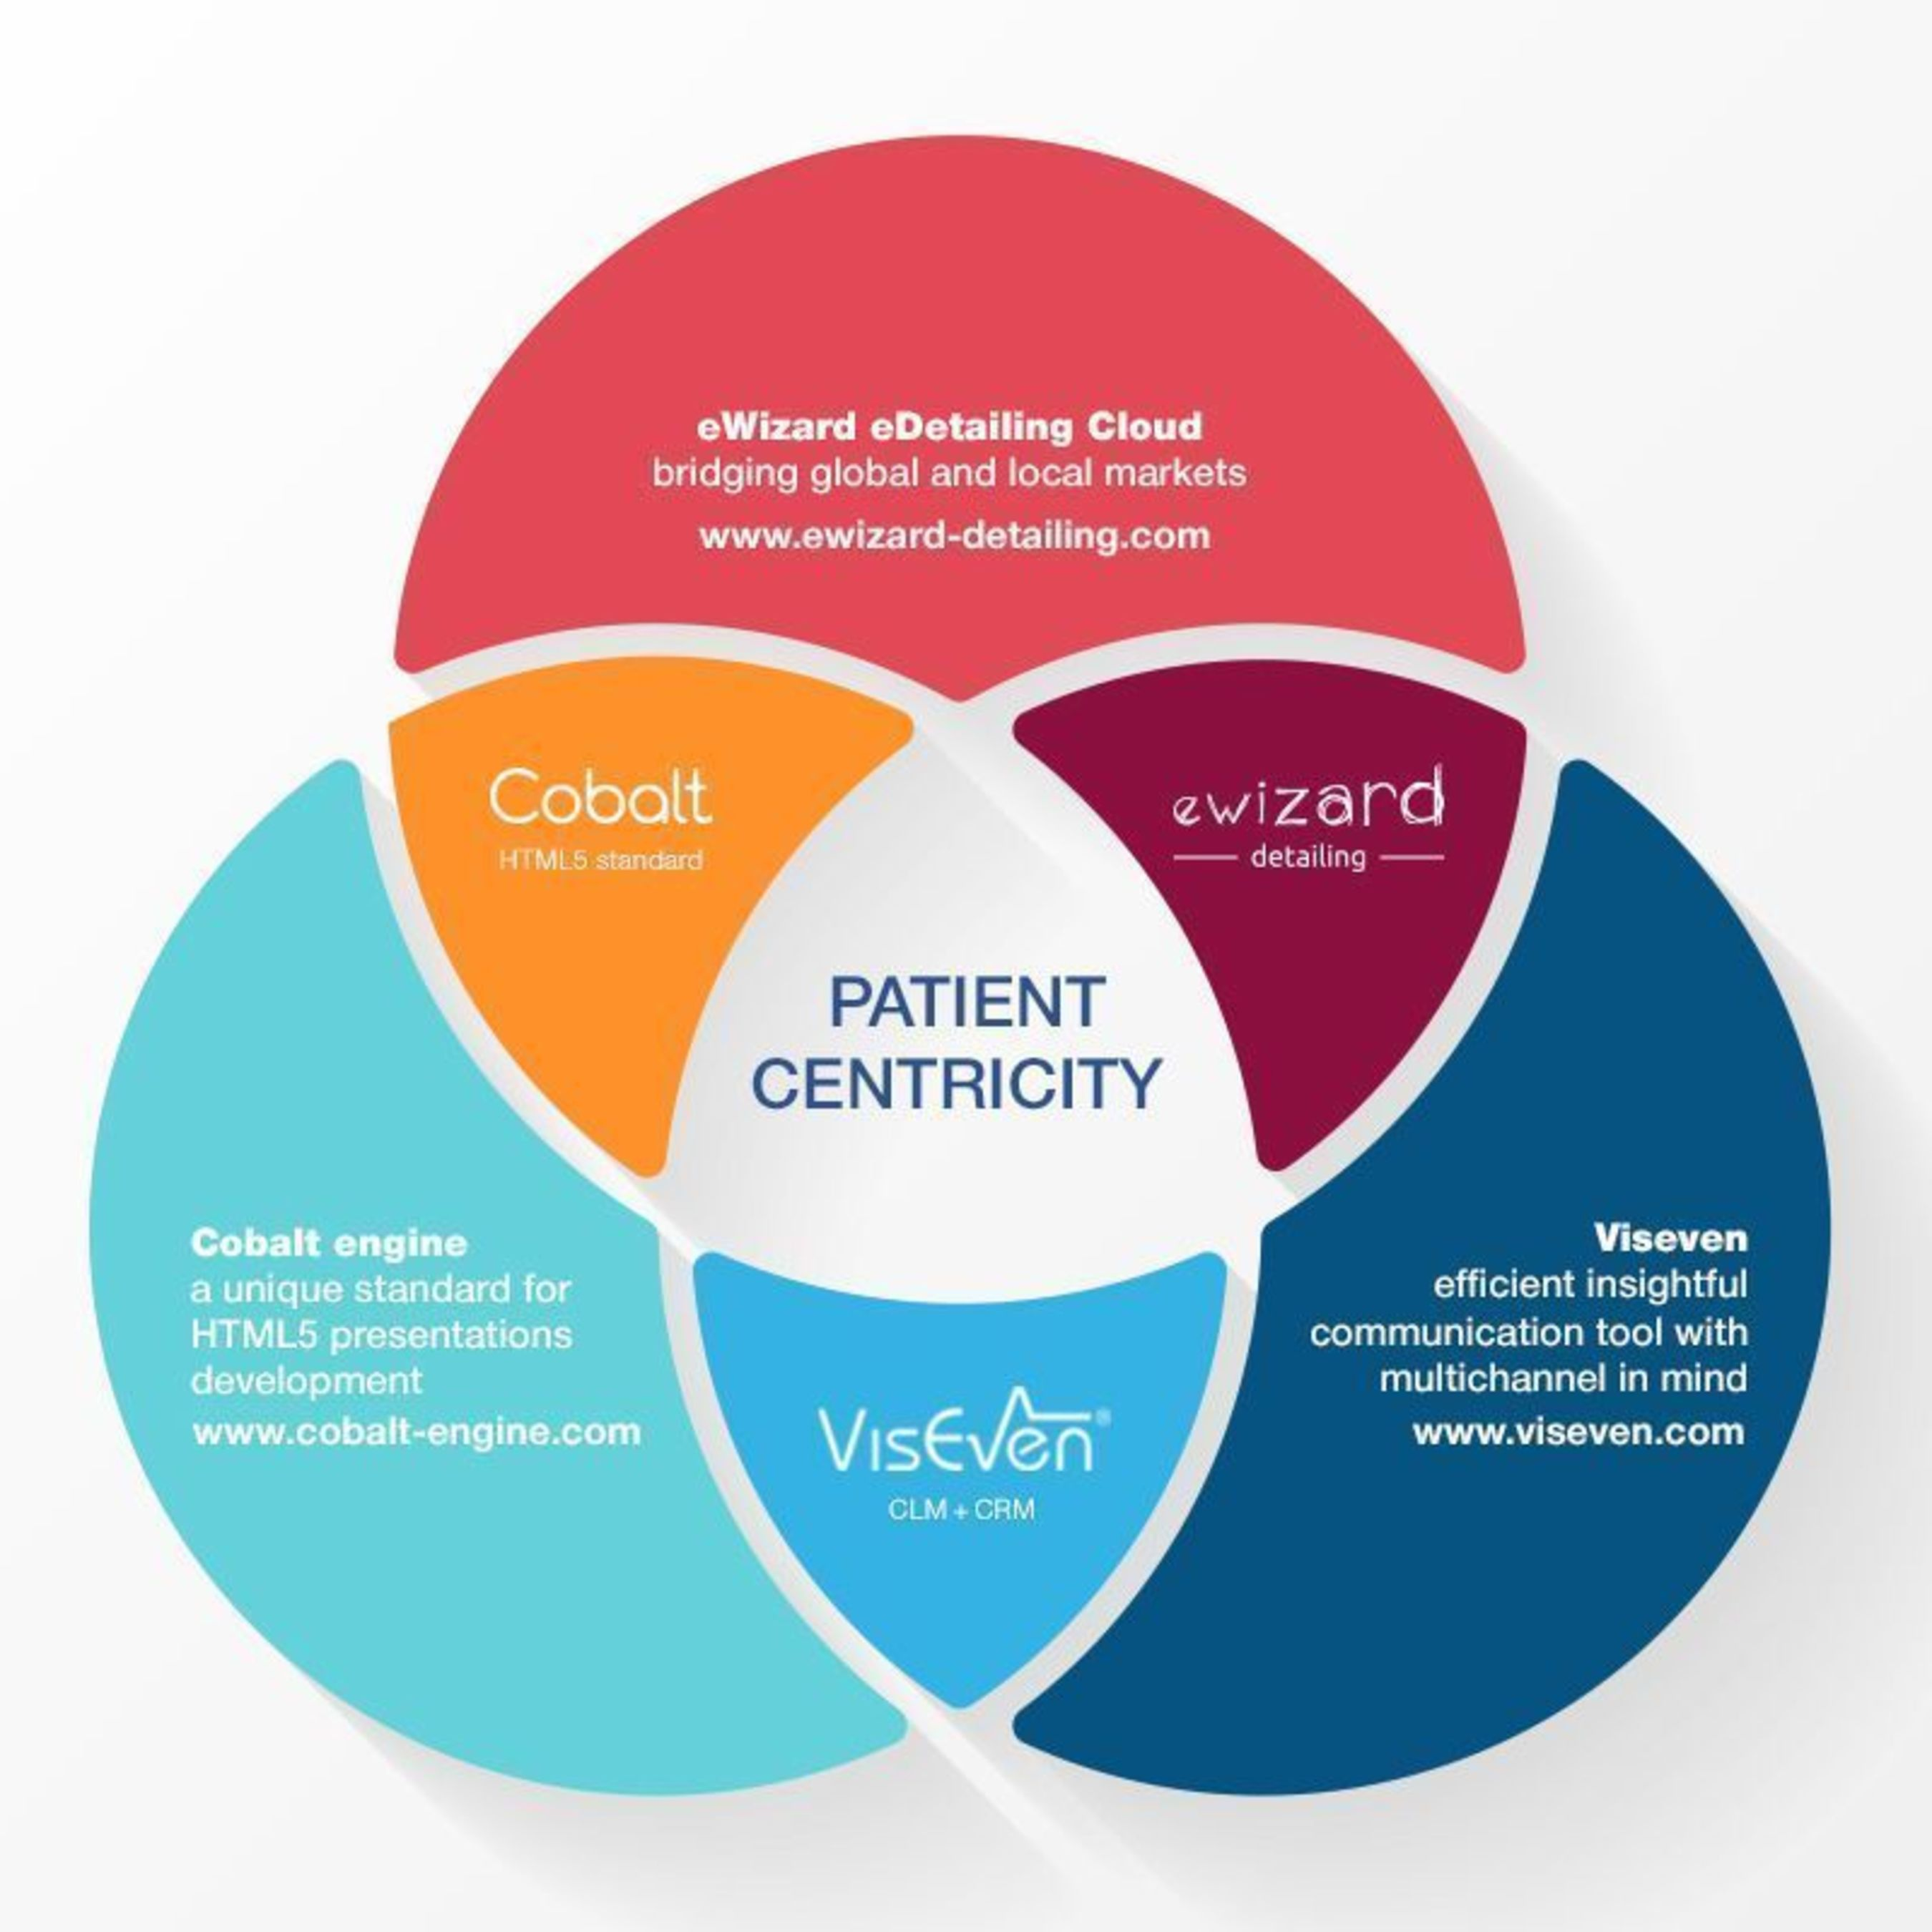 From eWizard to Viseven - We Are all the Soldiers of the Patient's Will